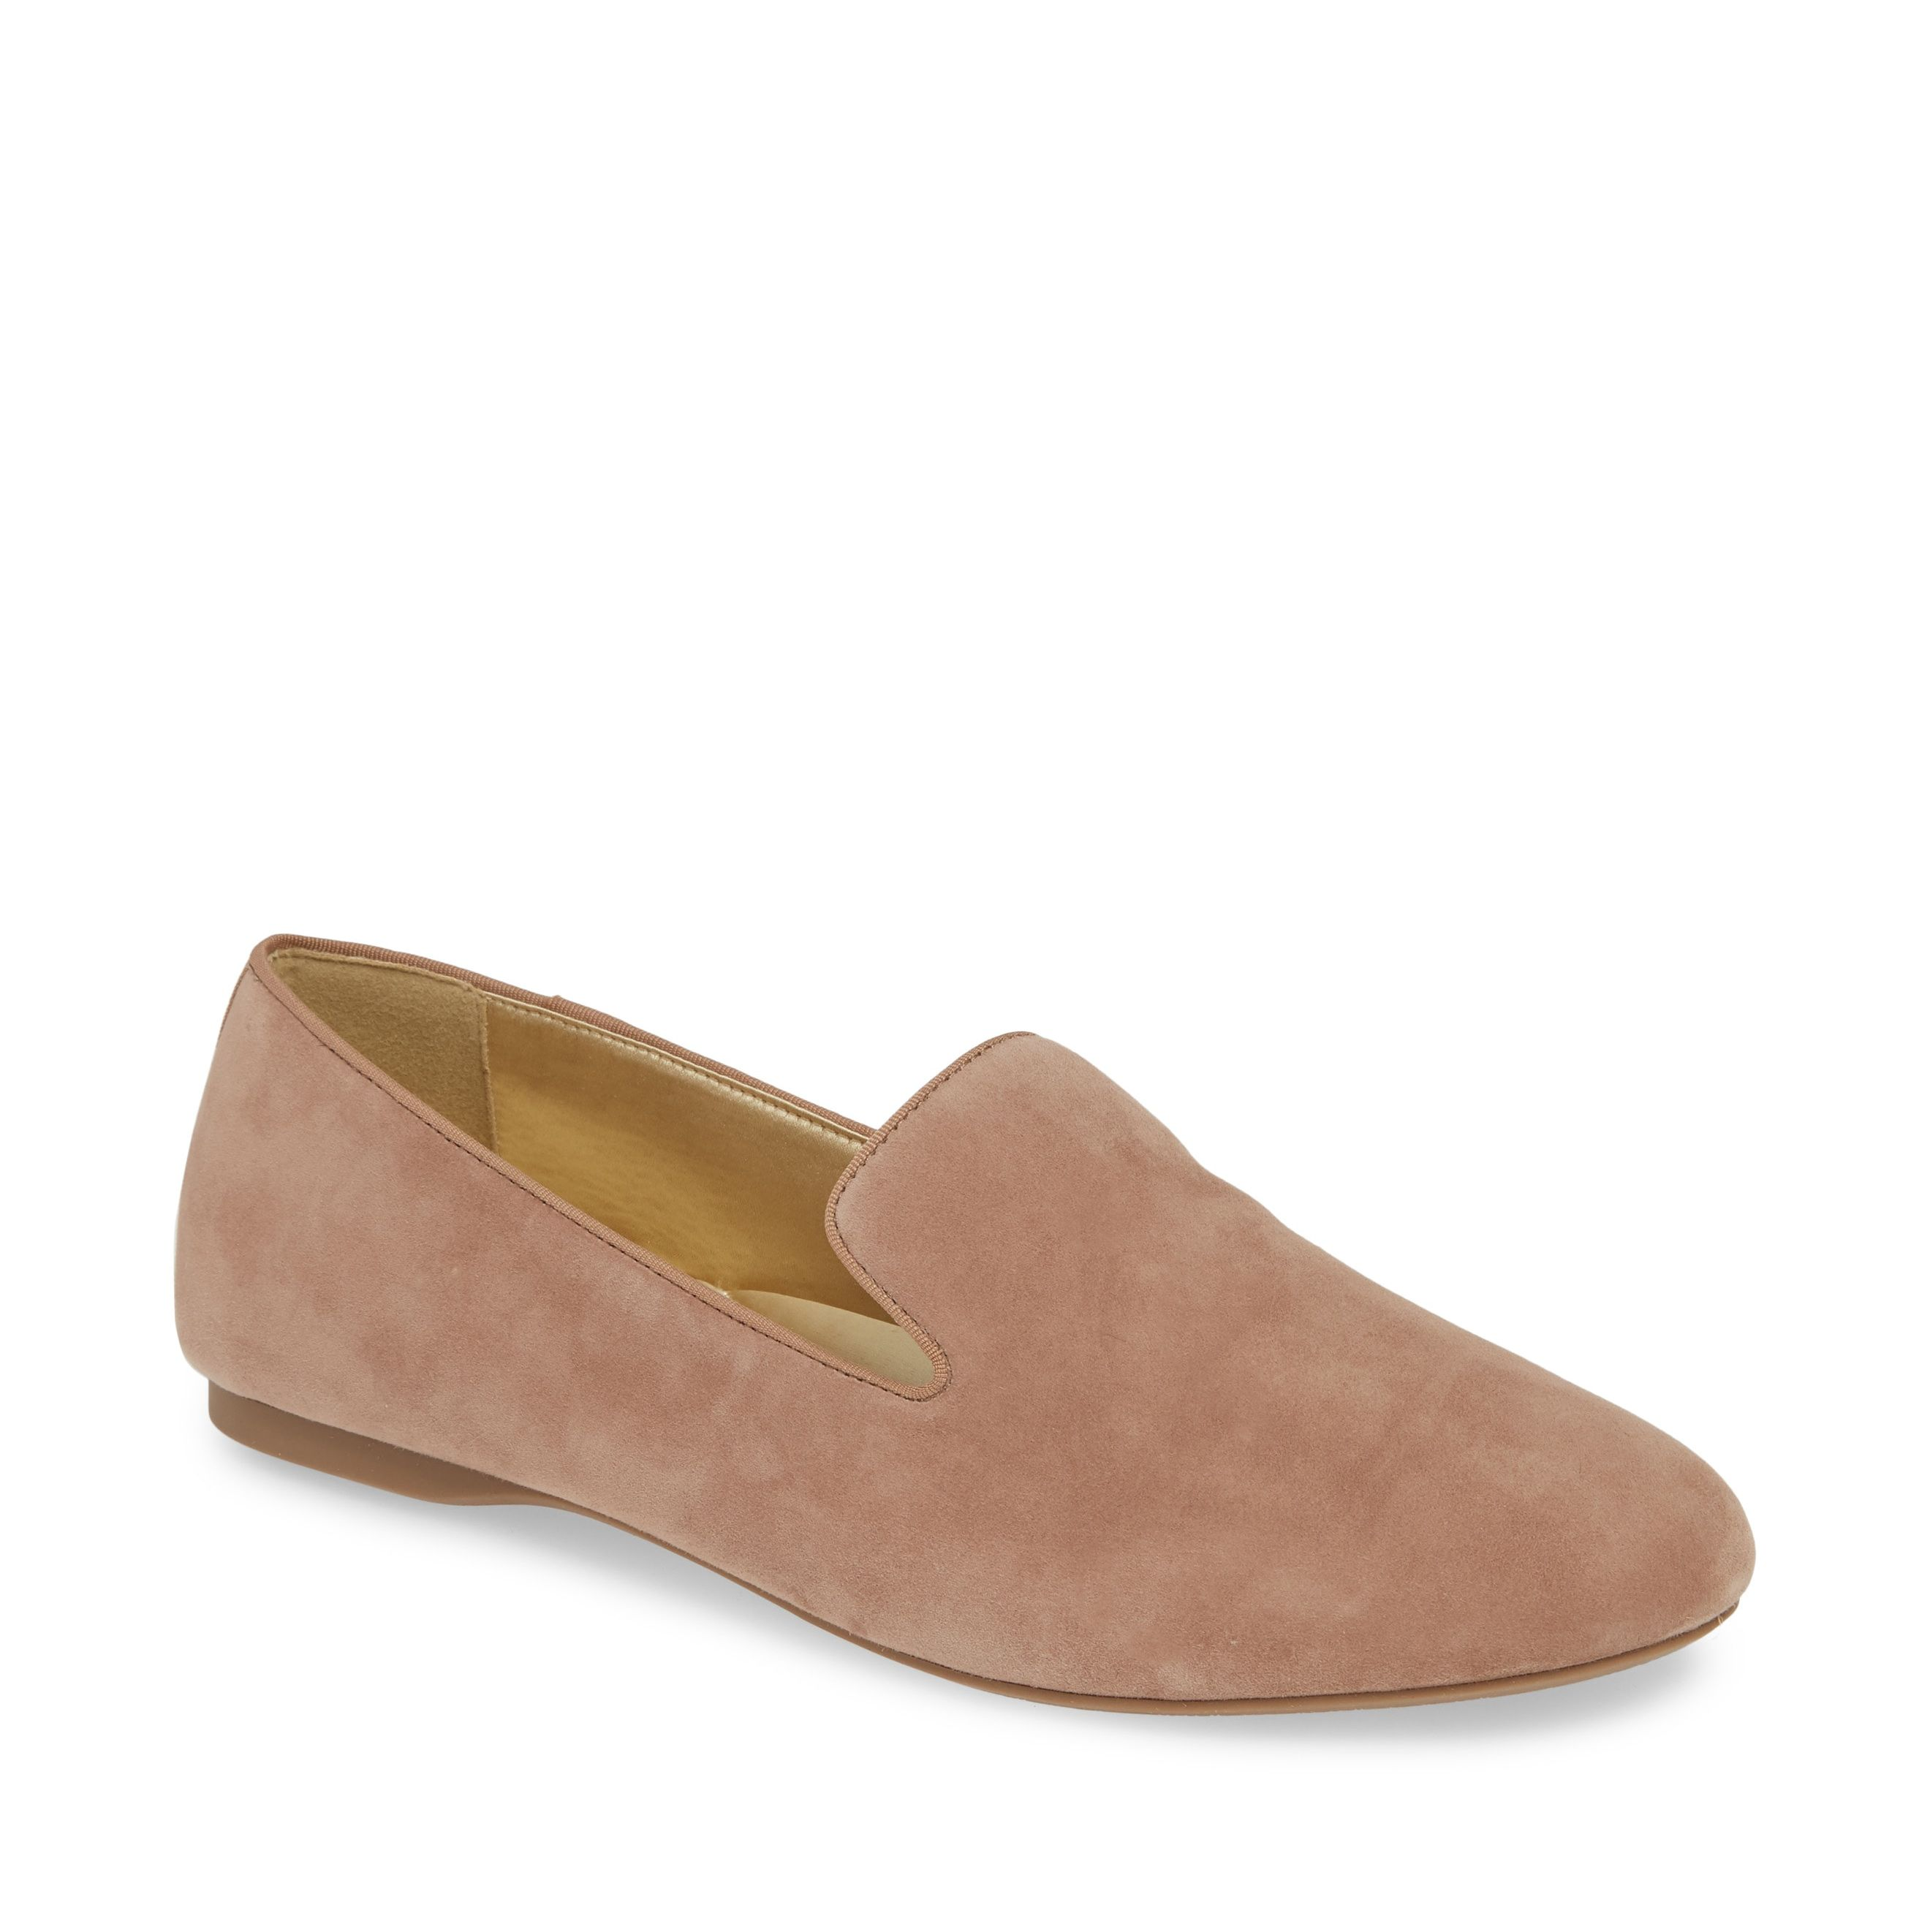 bf3851059cf Meghan Markle s Favorite Slippers Are Chic Enough to Wear to Work